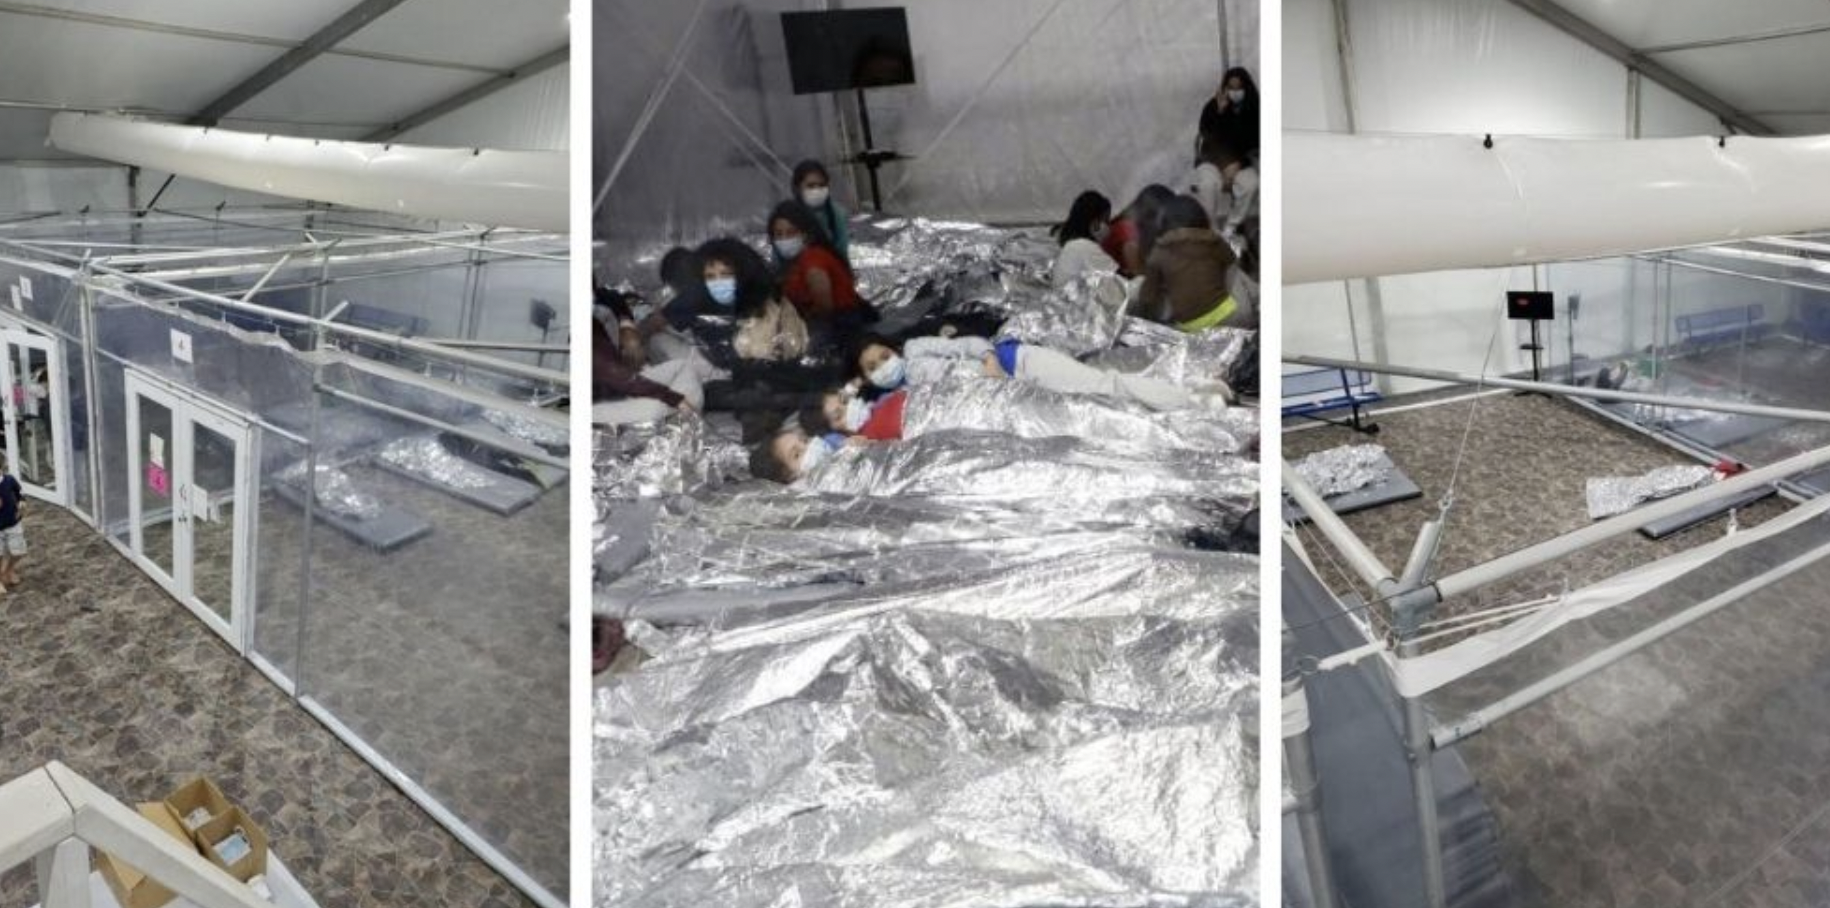 Democrat Rep. slams DHS for 'misleading' photos of Donna migrant facility